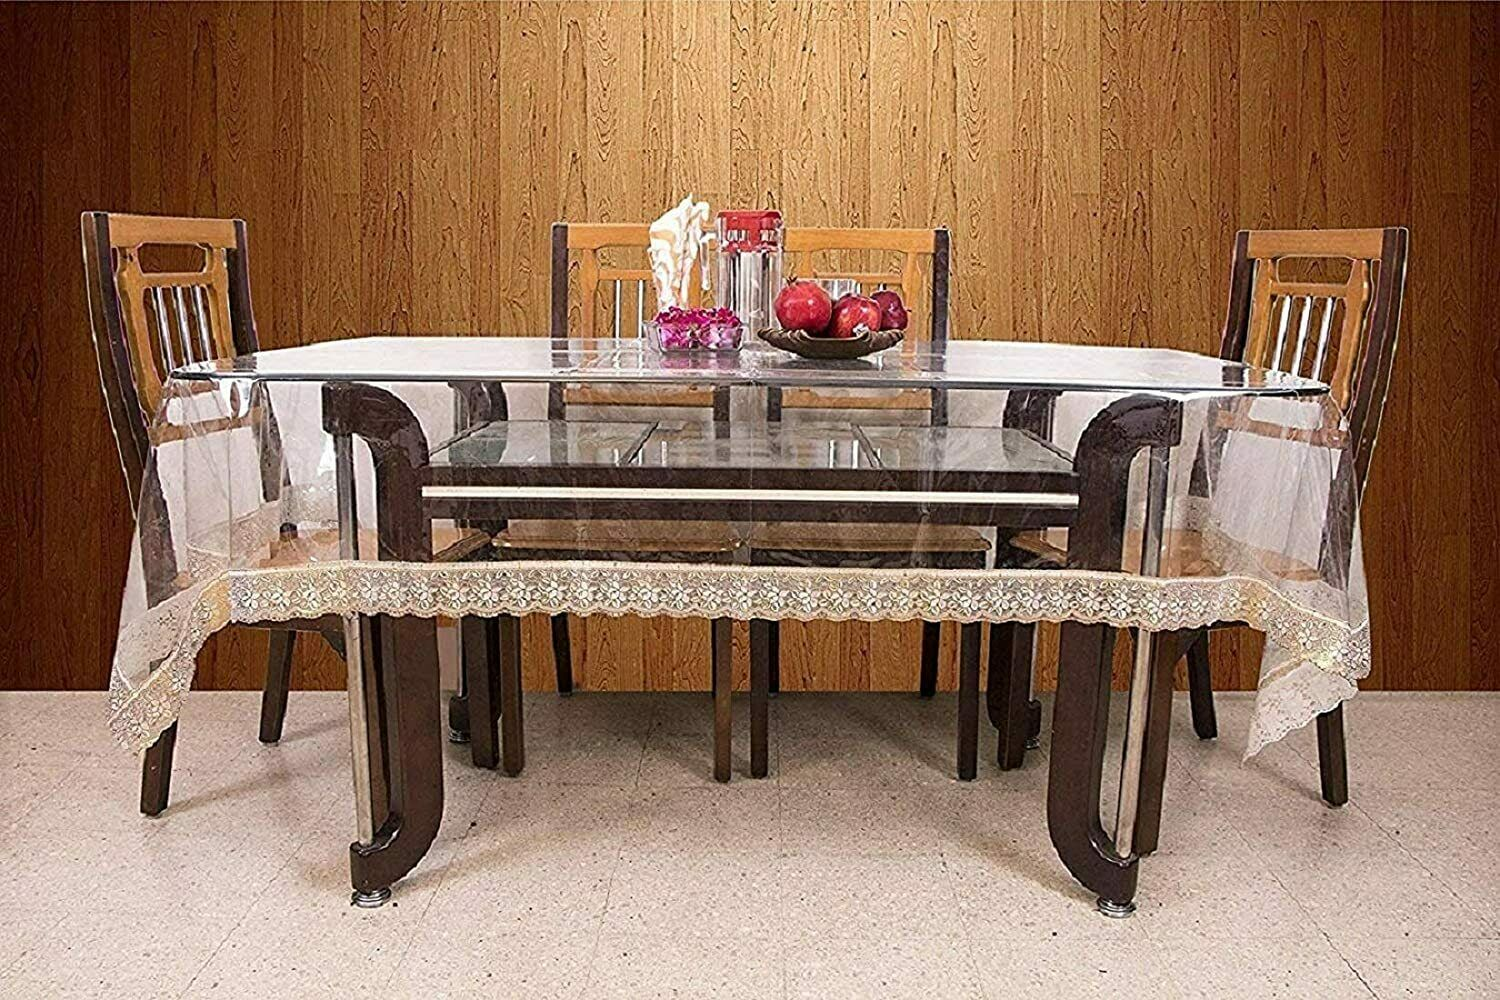 Oval Shape Plastic Transparent 6 Seater Dining Table Cover With Golden Lace For Sale Online Ebay